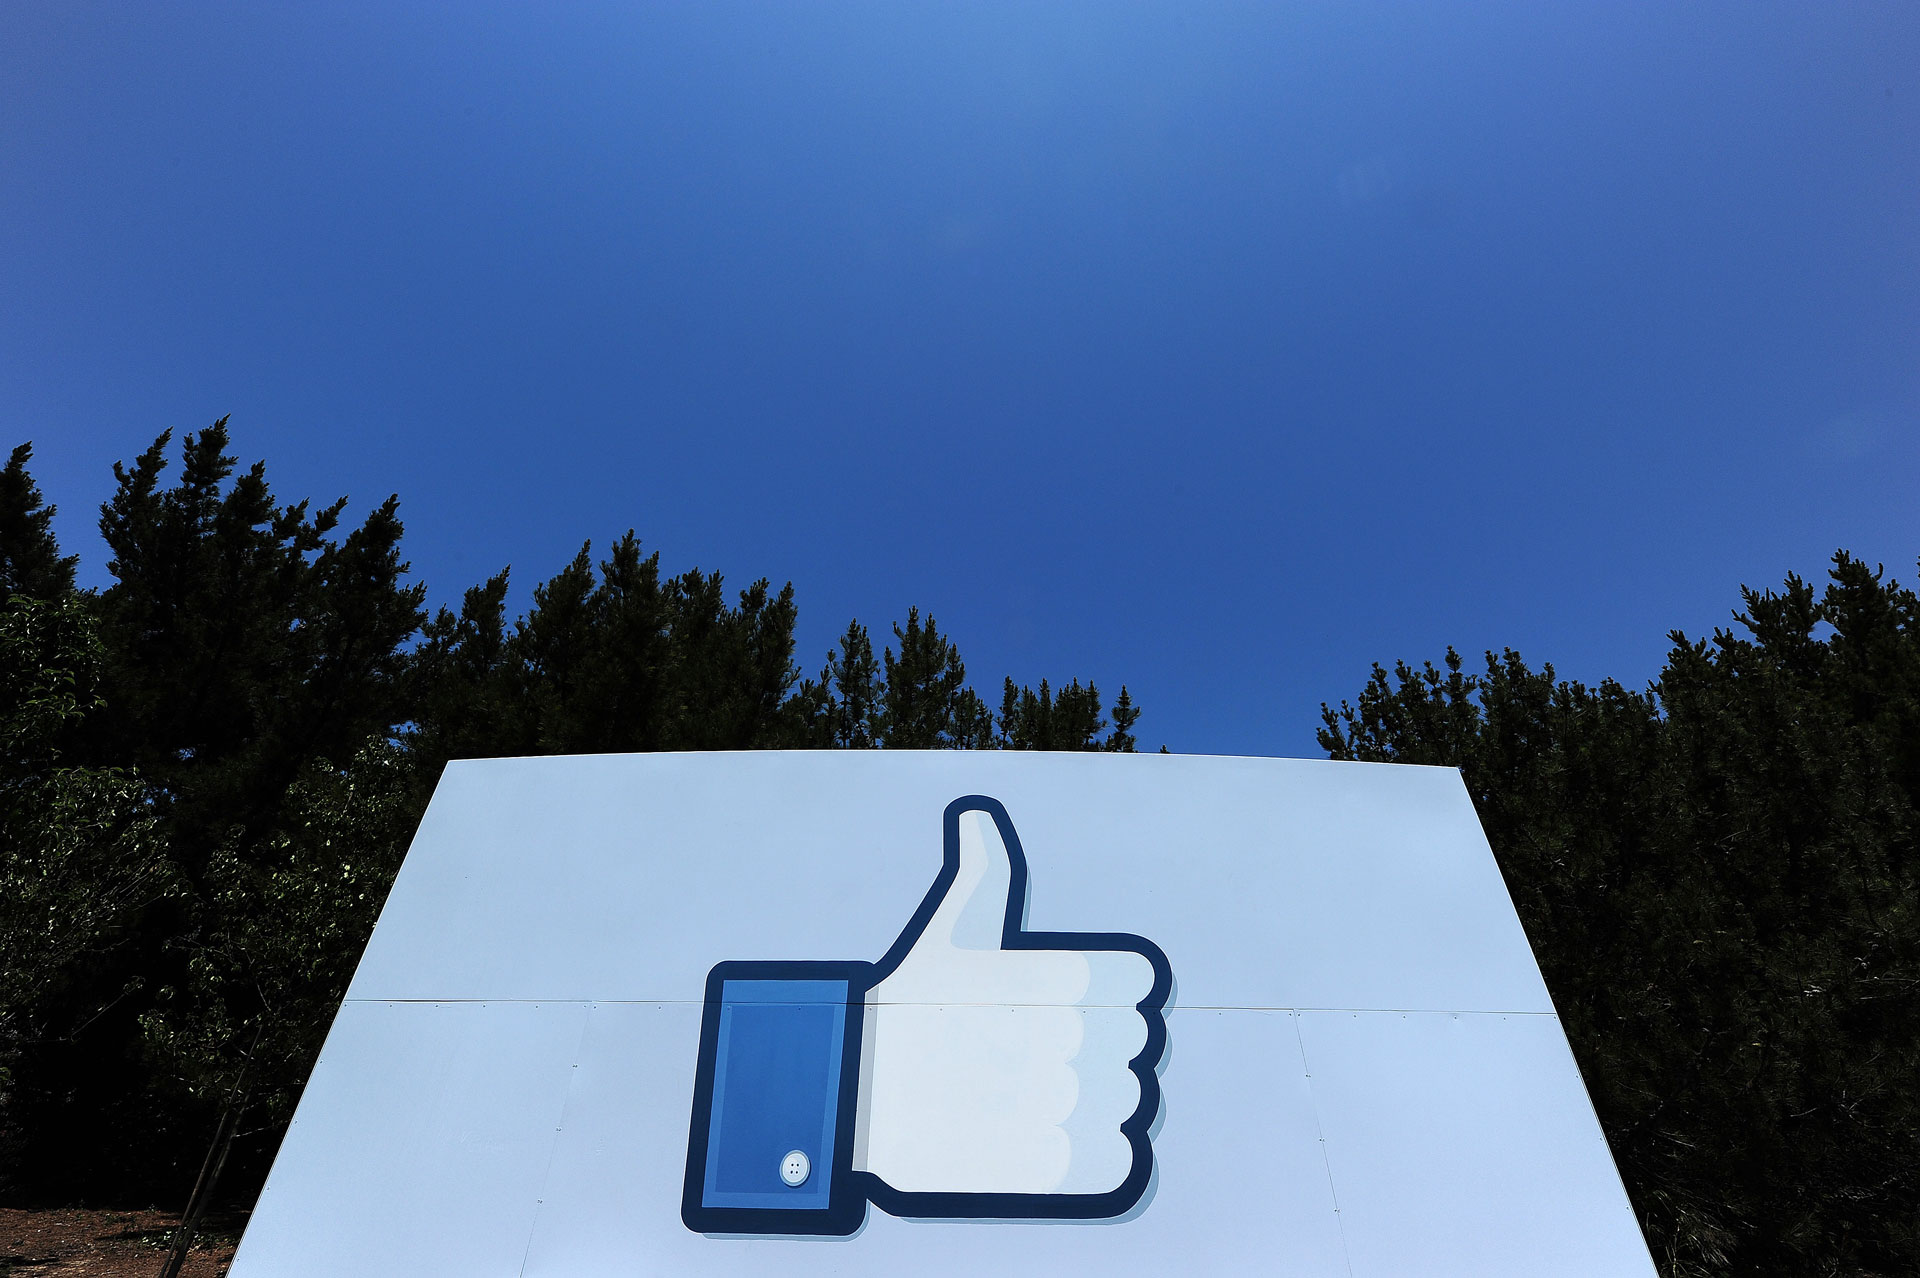 Facebook Rolls out Tool Allowing Users to Block off-Site Data Gathering